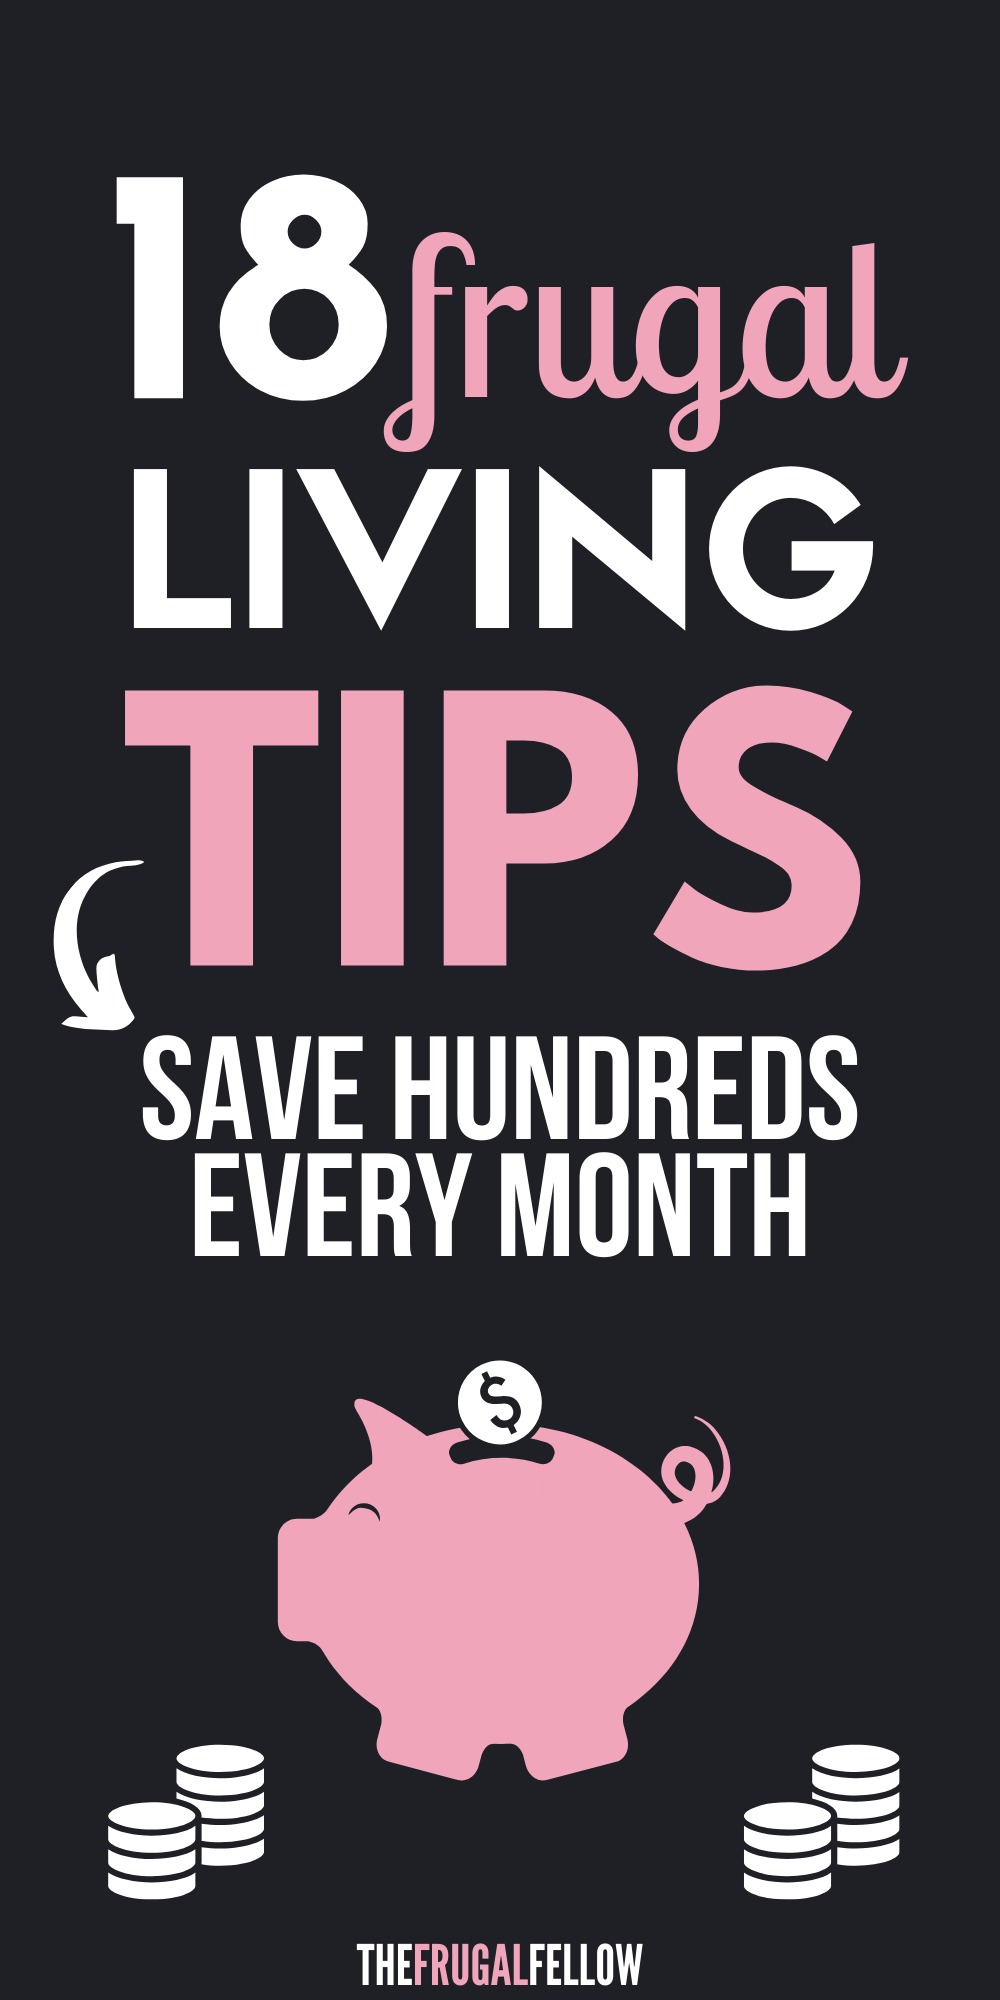 These frugal living ideas will help you with frugal living and being frugal. If you want to know how to be frugal, check this out!